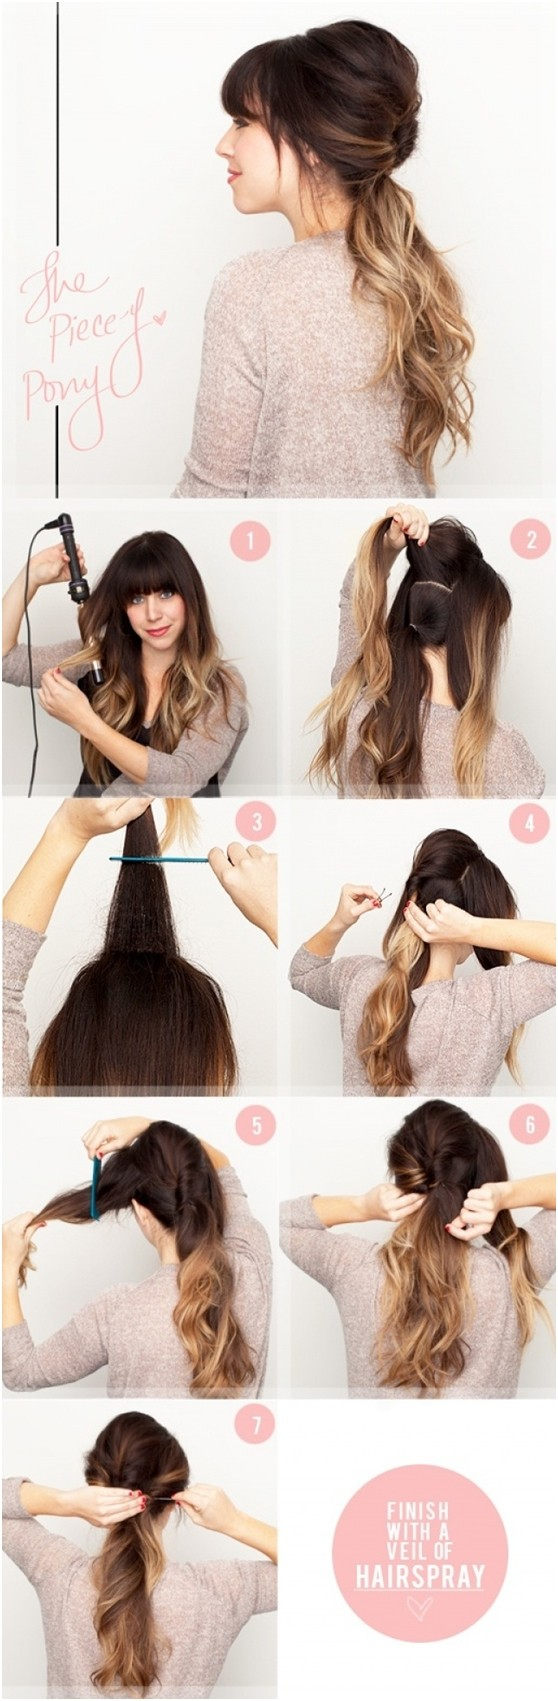 Style Your Hair Into A Regular Ponytail Take Section Of From The Back And Wrap It Around To Hide Elastic